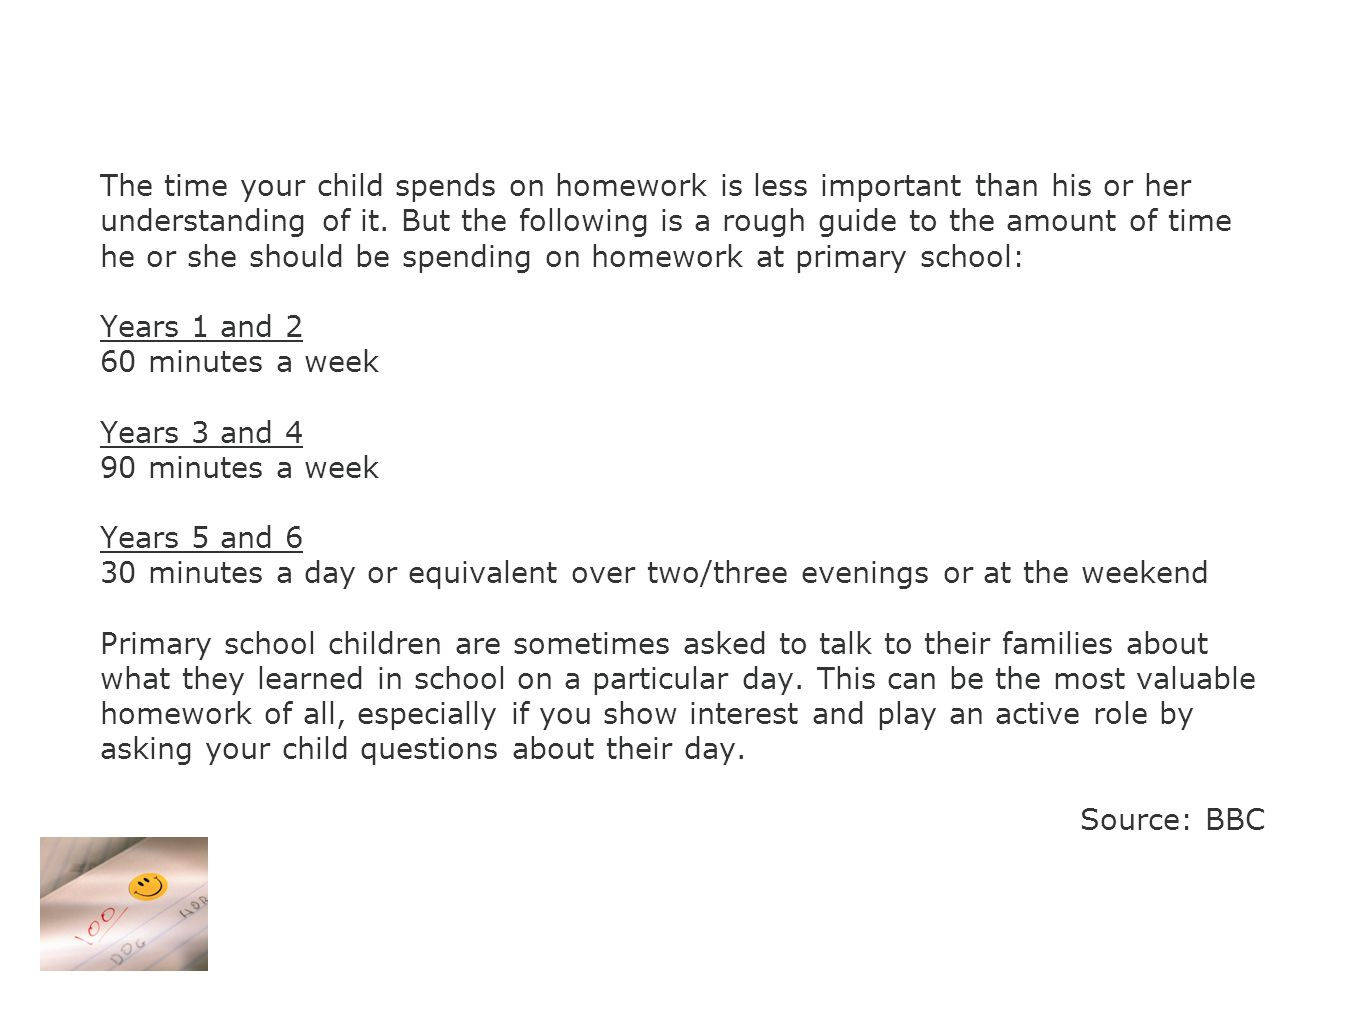 The time your child spends on homework is less important than his or her understanding of it.